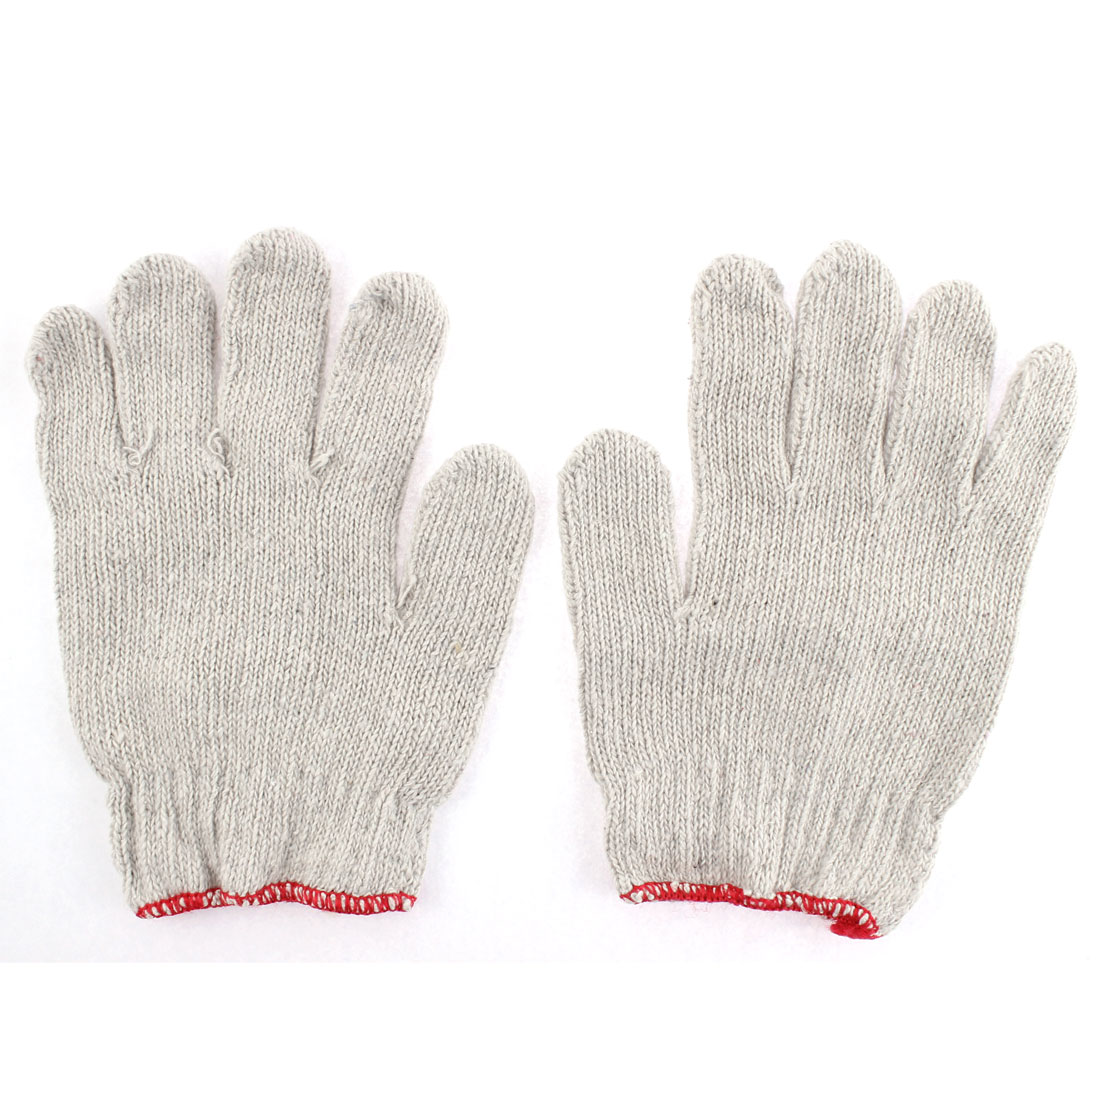 White Cotton Blend Knitted Soft Protective Work Working Gloves Pair